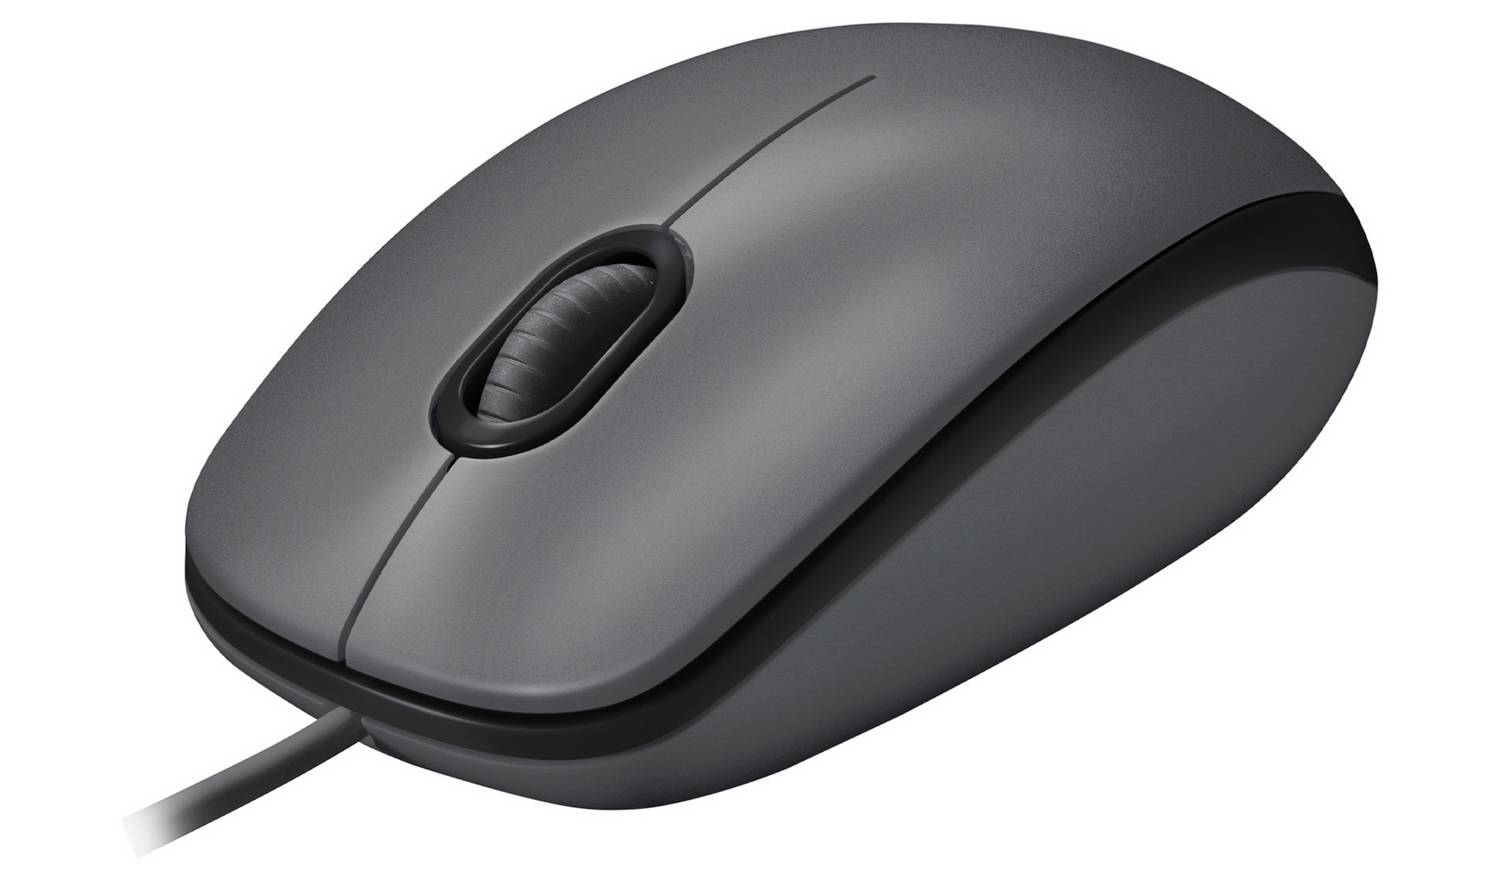 Logitech M100 Wired Mouse - Black